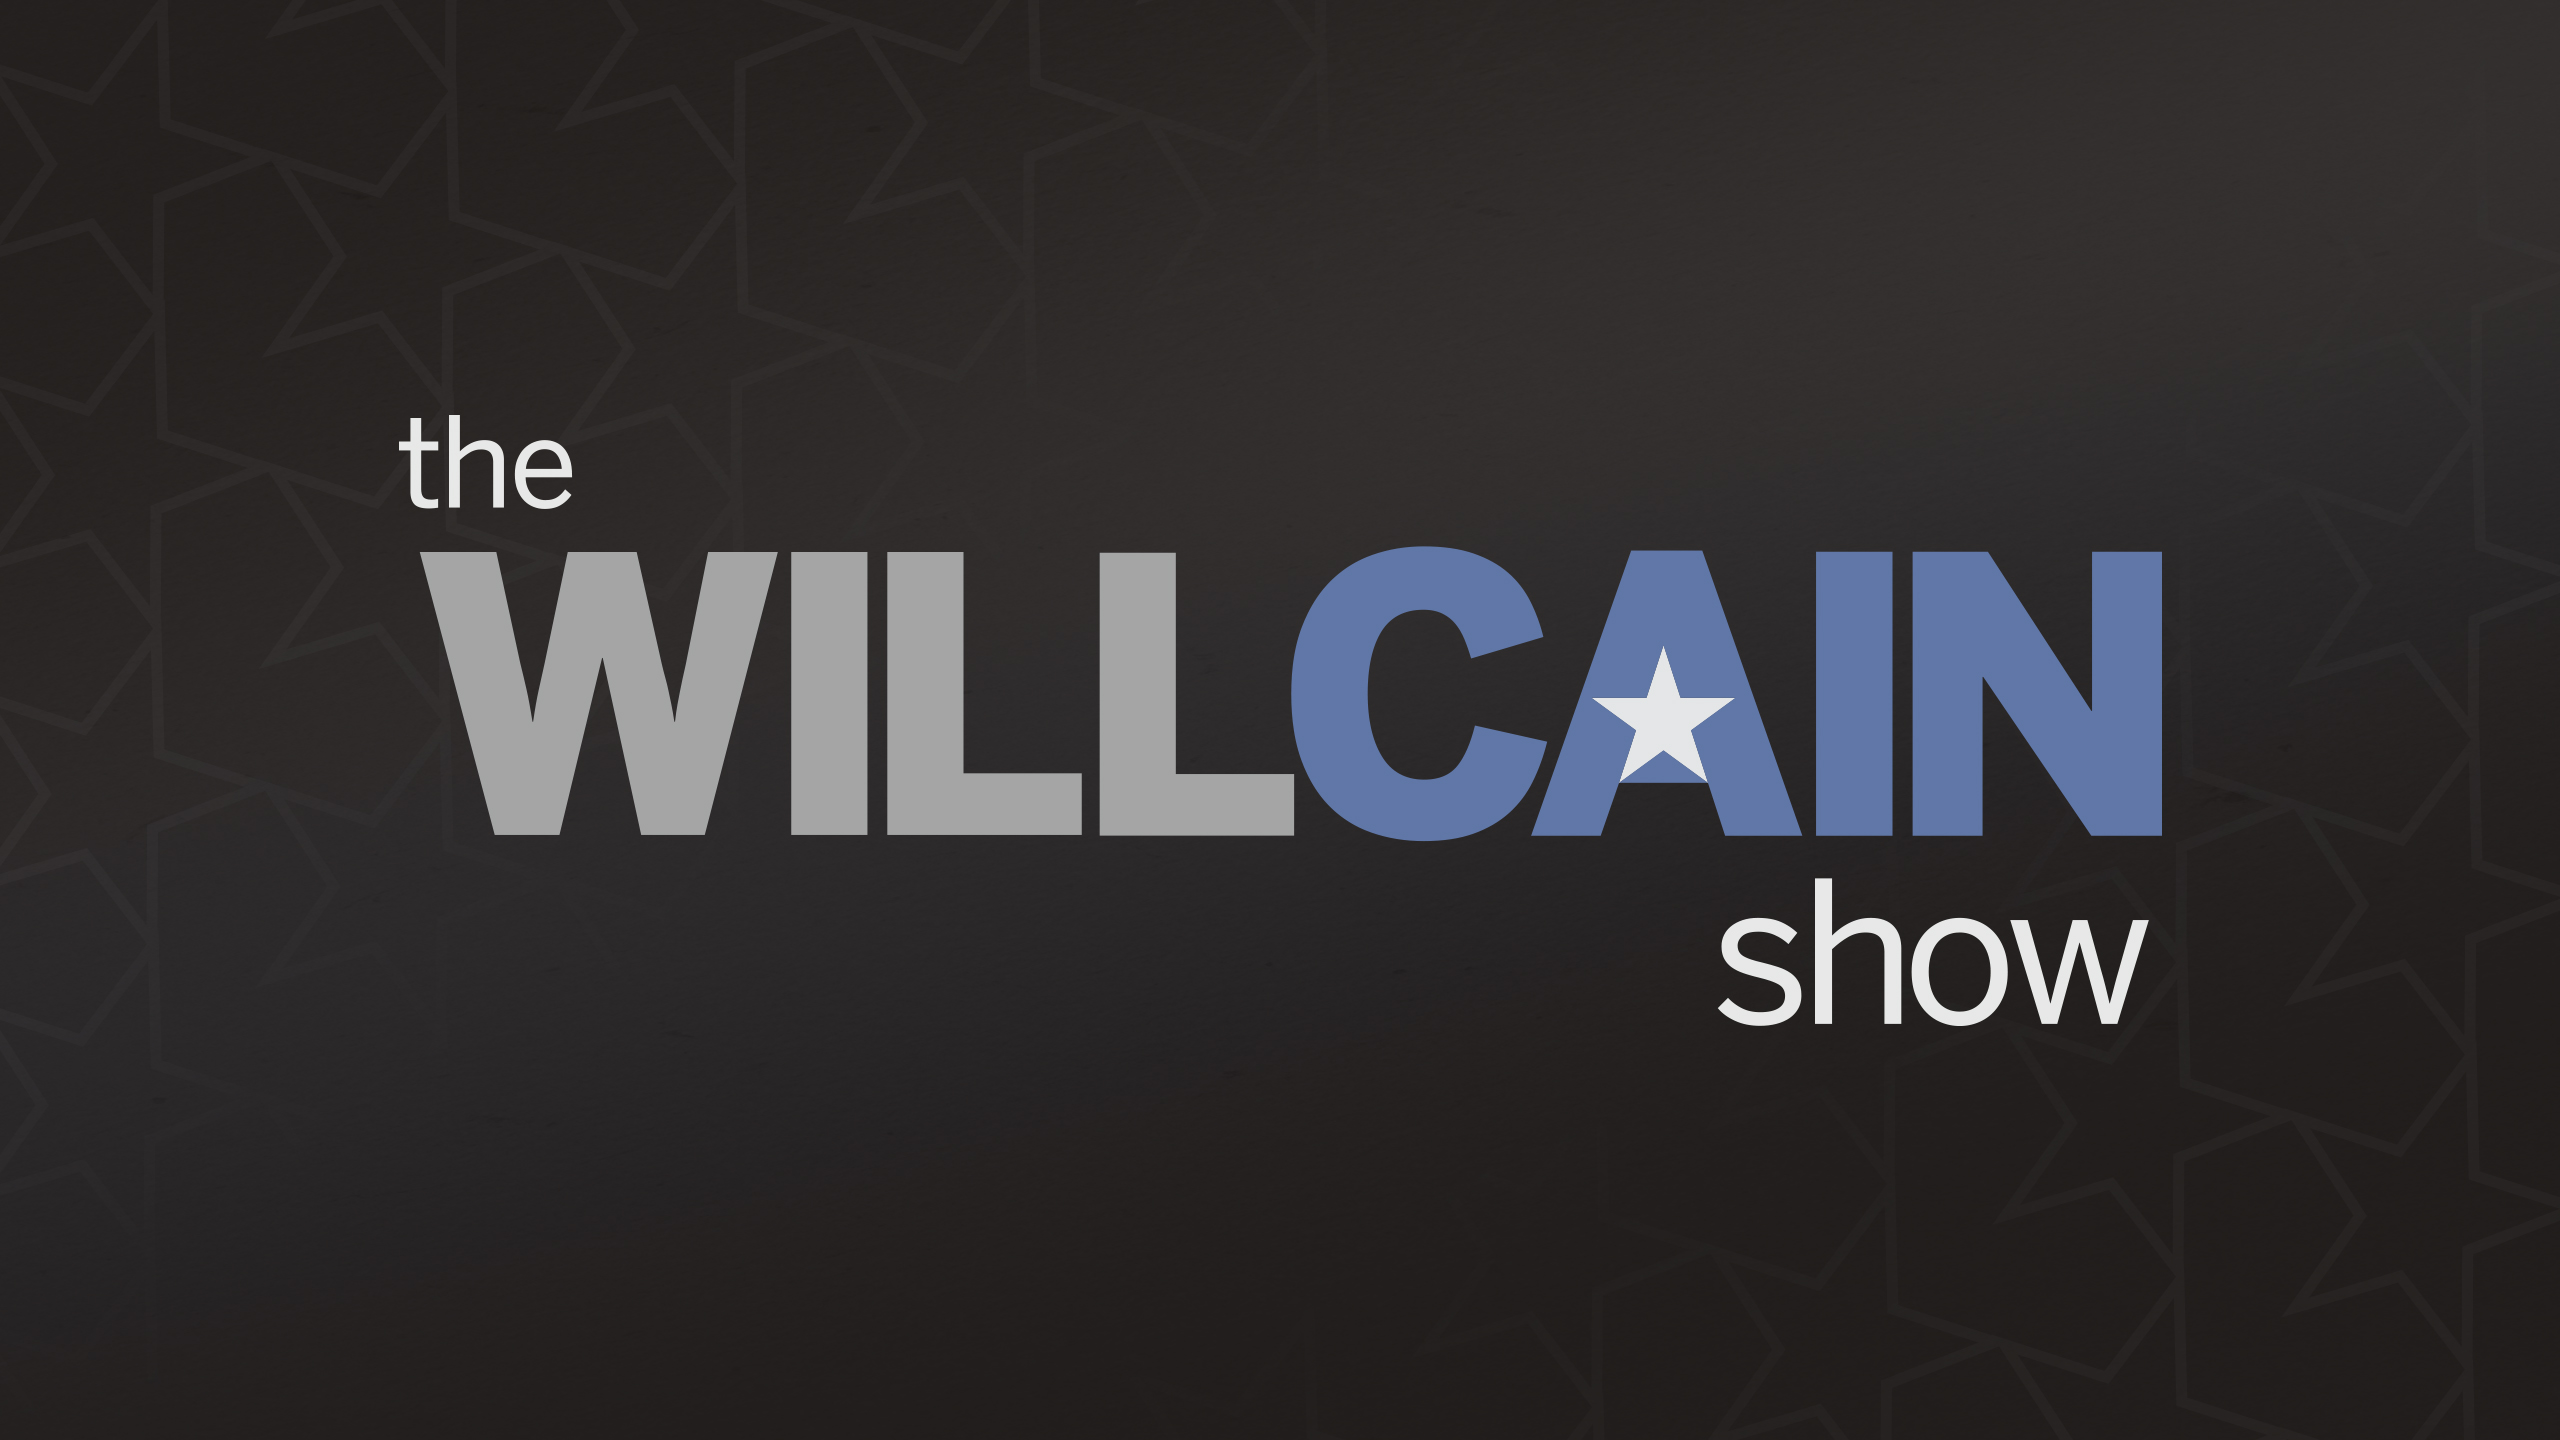 Thu, 12/13 - The Will Cain Show